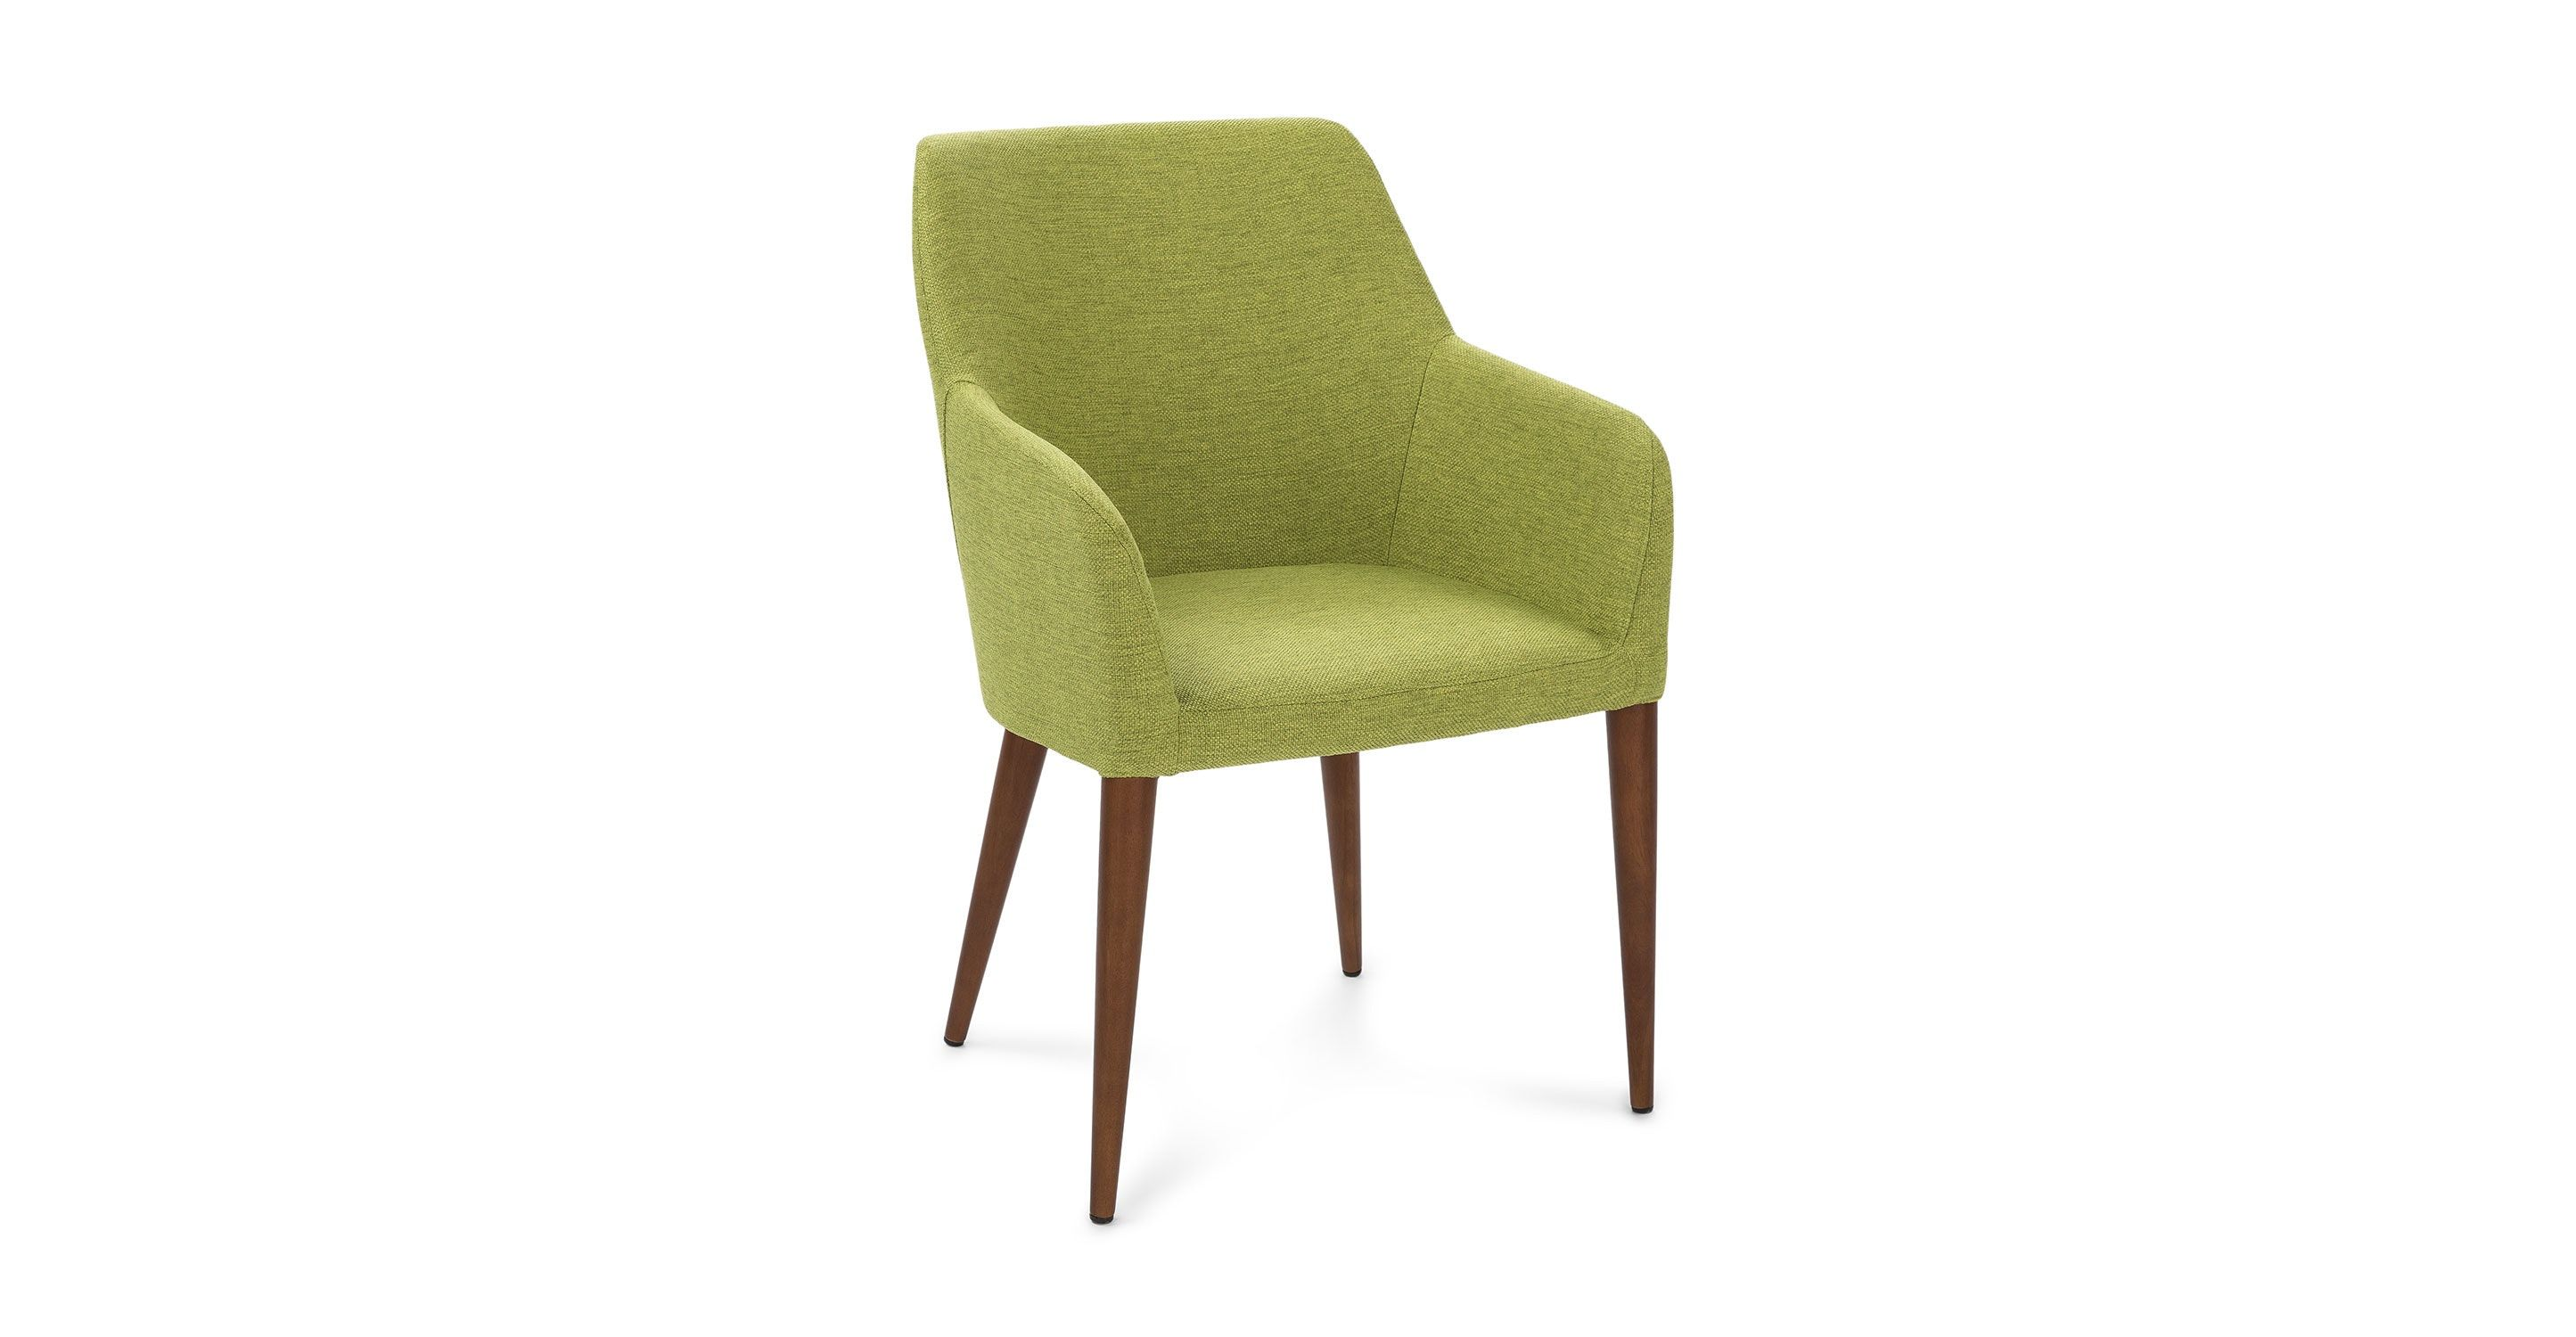 Feast Lime Green Dining Chair Green Dining Chairs Blue Dining Chair Dining Chairs